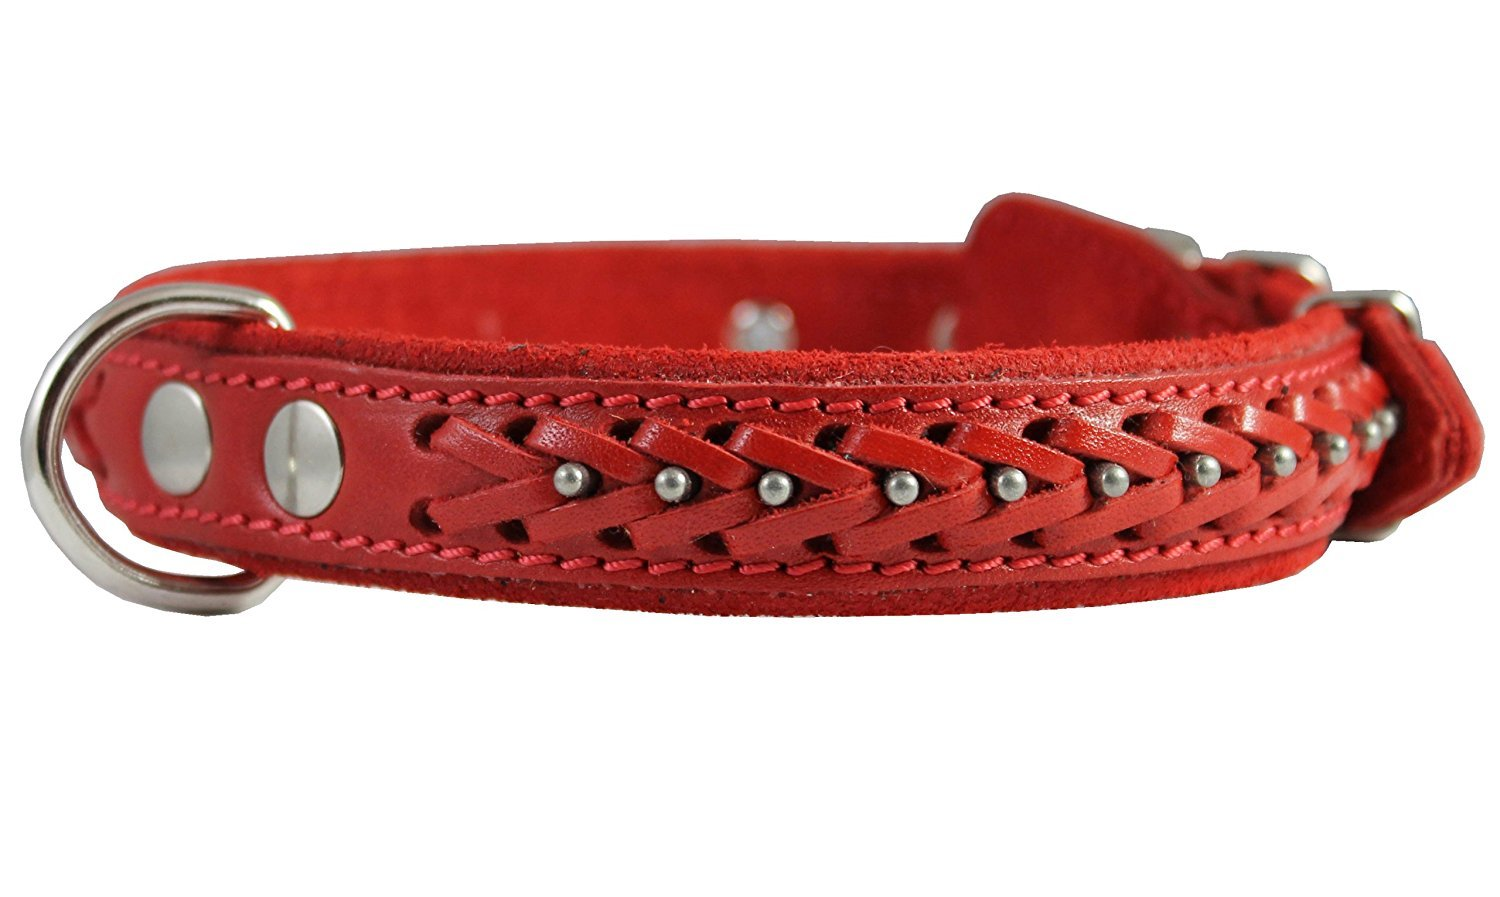 Genuine Leather Braided Studded Dog Collar Red 1 Wide. Fits 14-18 Neck. Brittany Collie Harrier